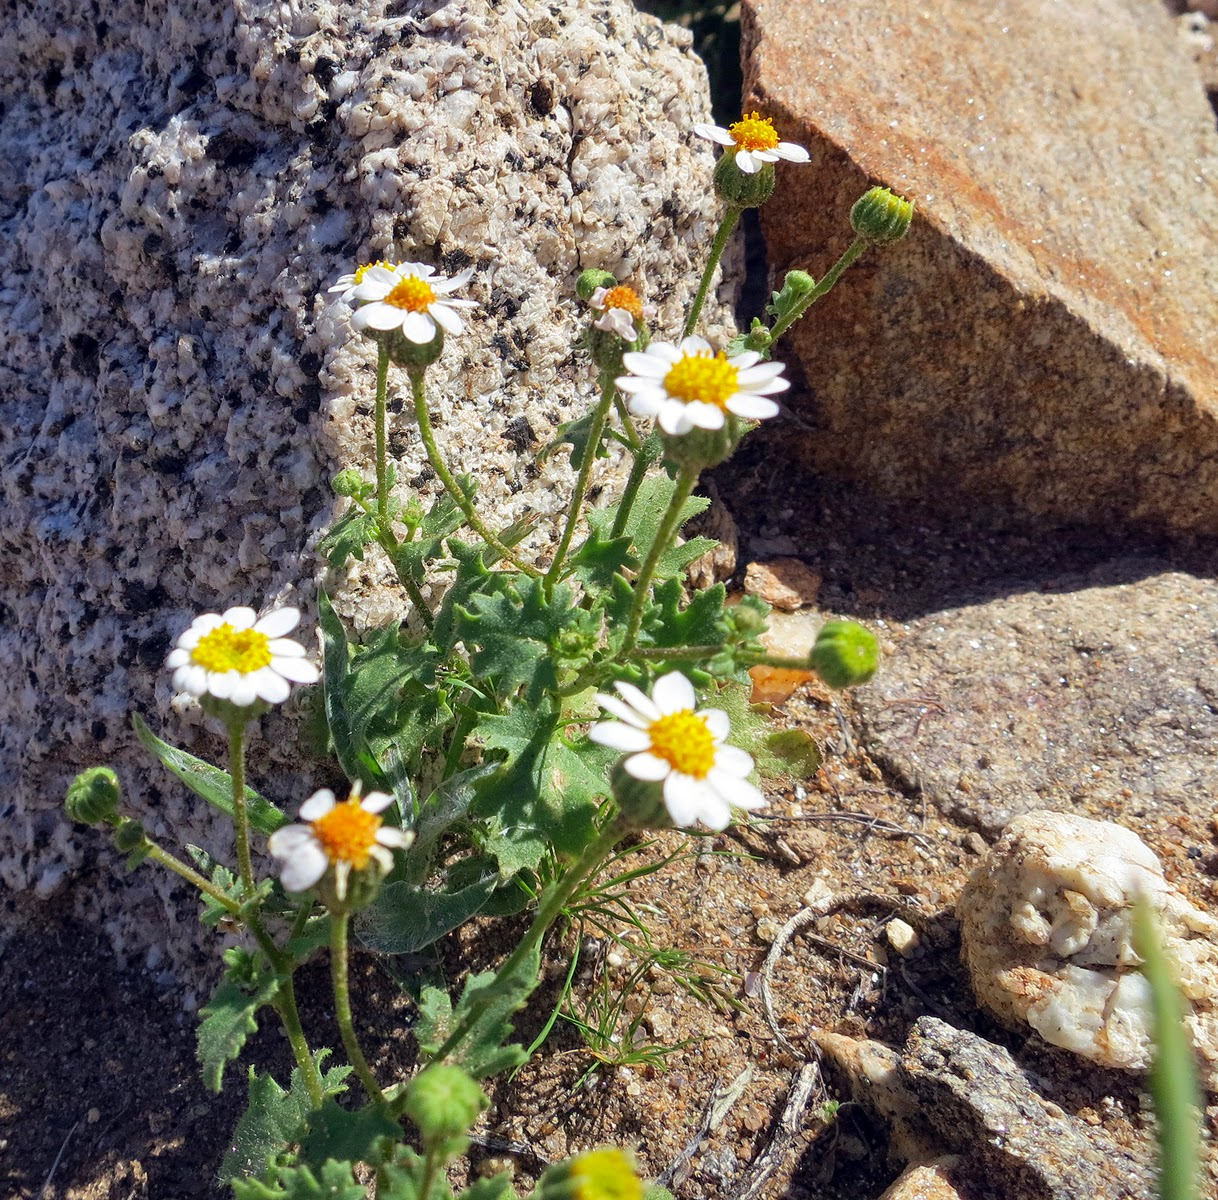 Emory's Rock-Daisy are usually hard to spot due to their small size.